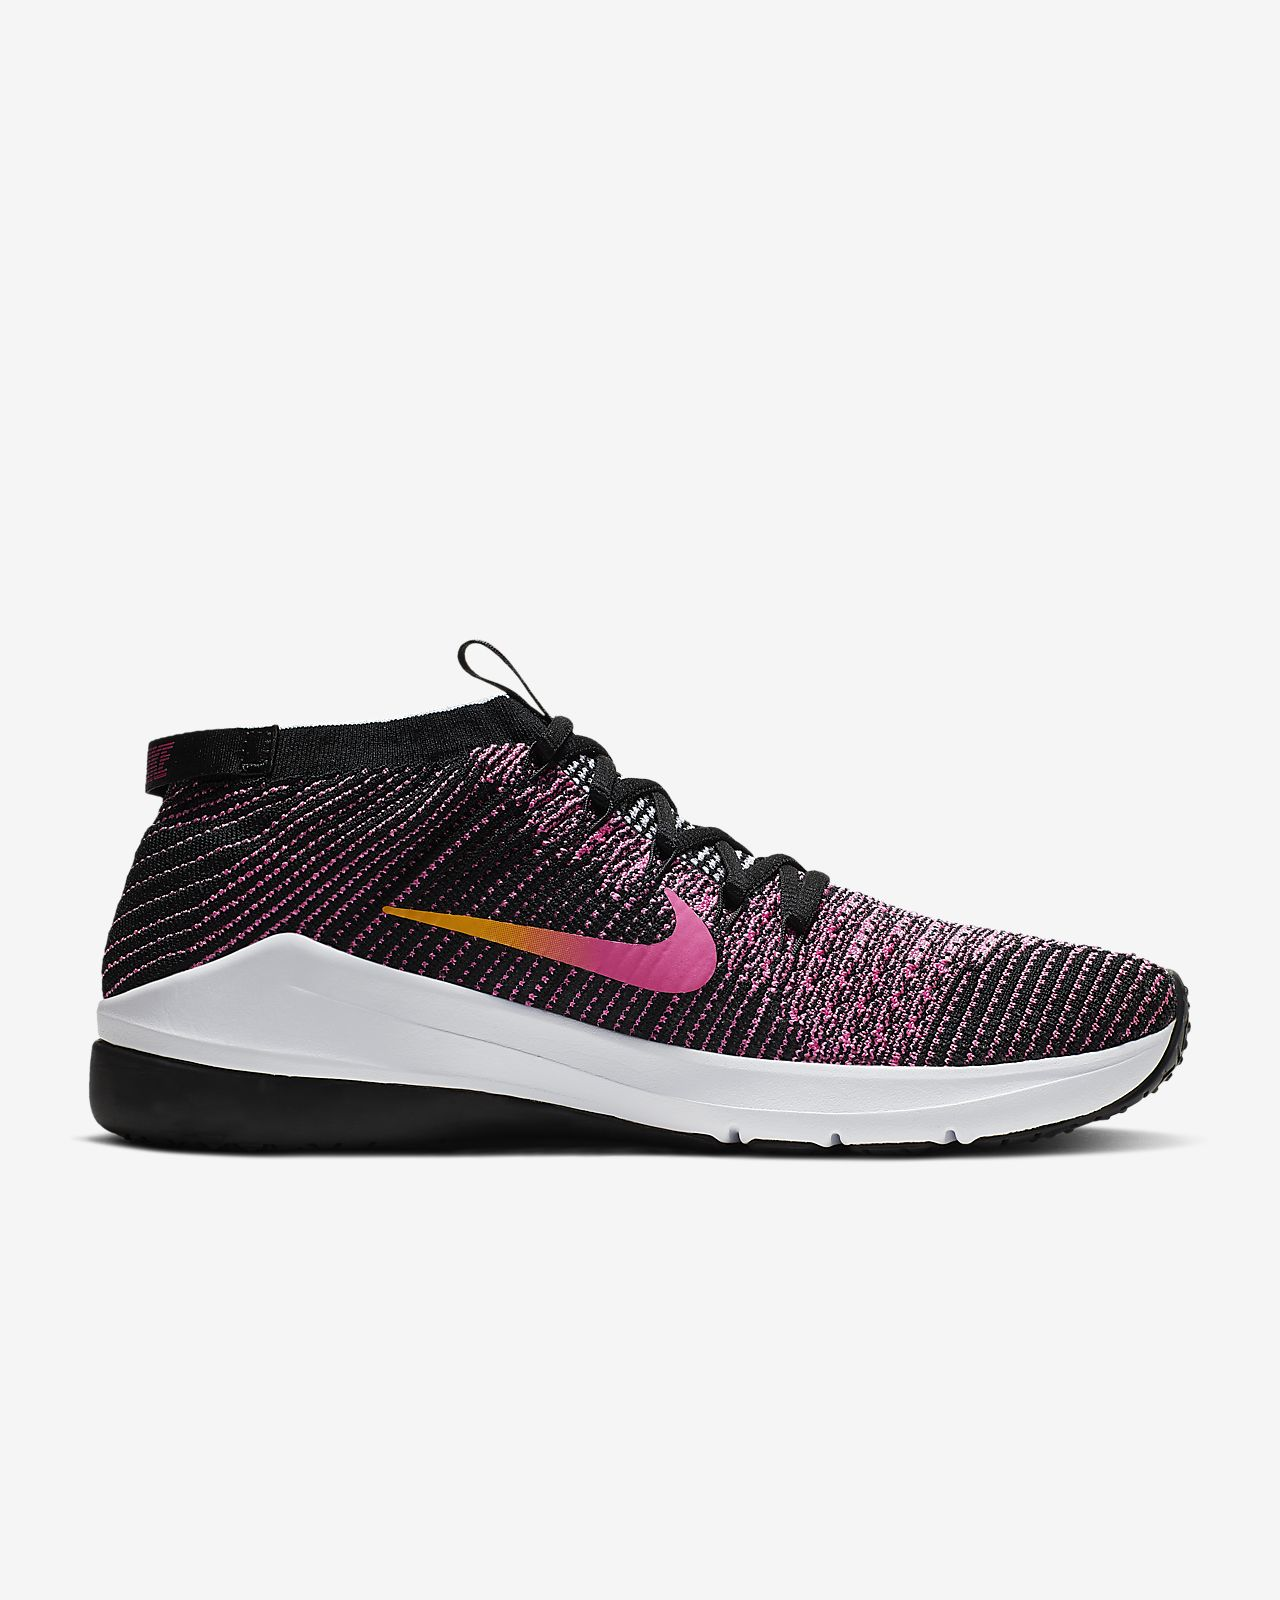 online retailer 3d436 c3ca7 ... Nike Air Zoom Fearless Flyknit 2 Women s Gym Training Boxing Shoe